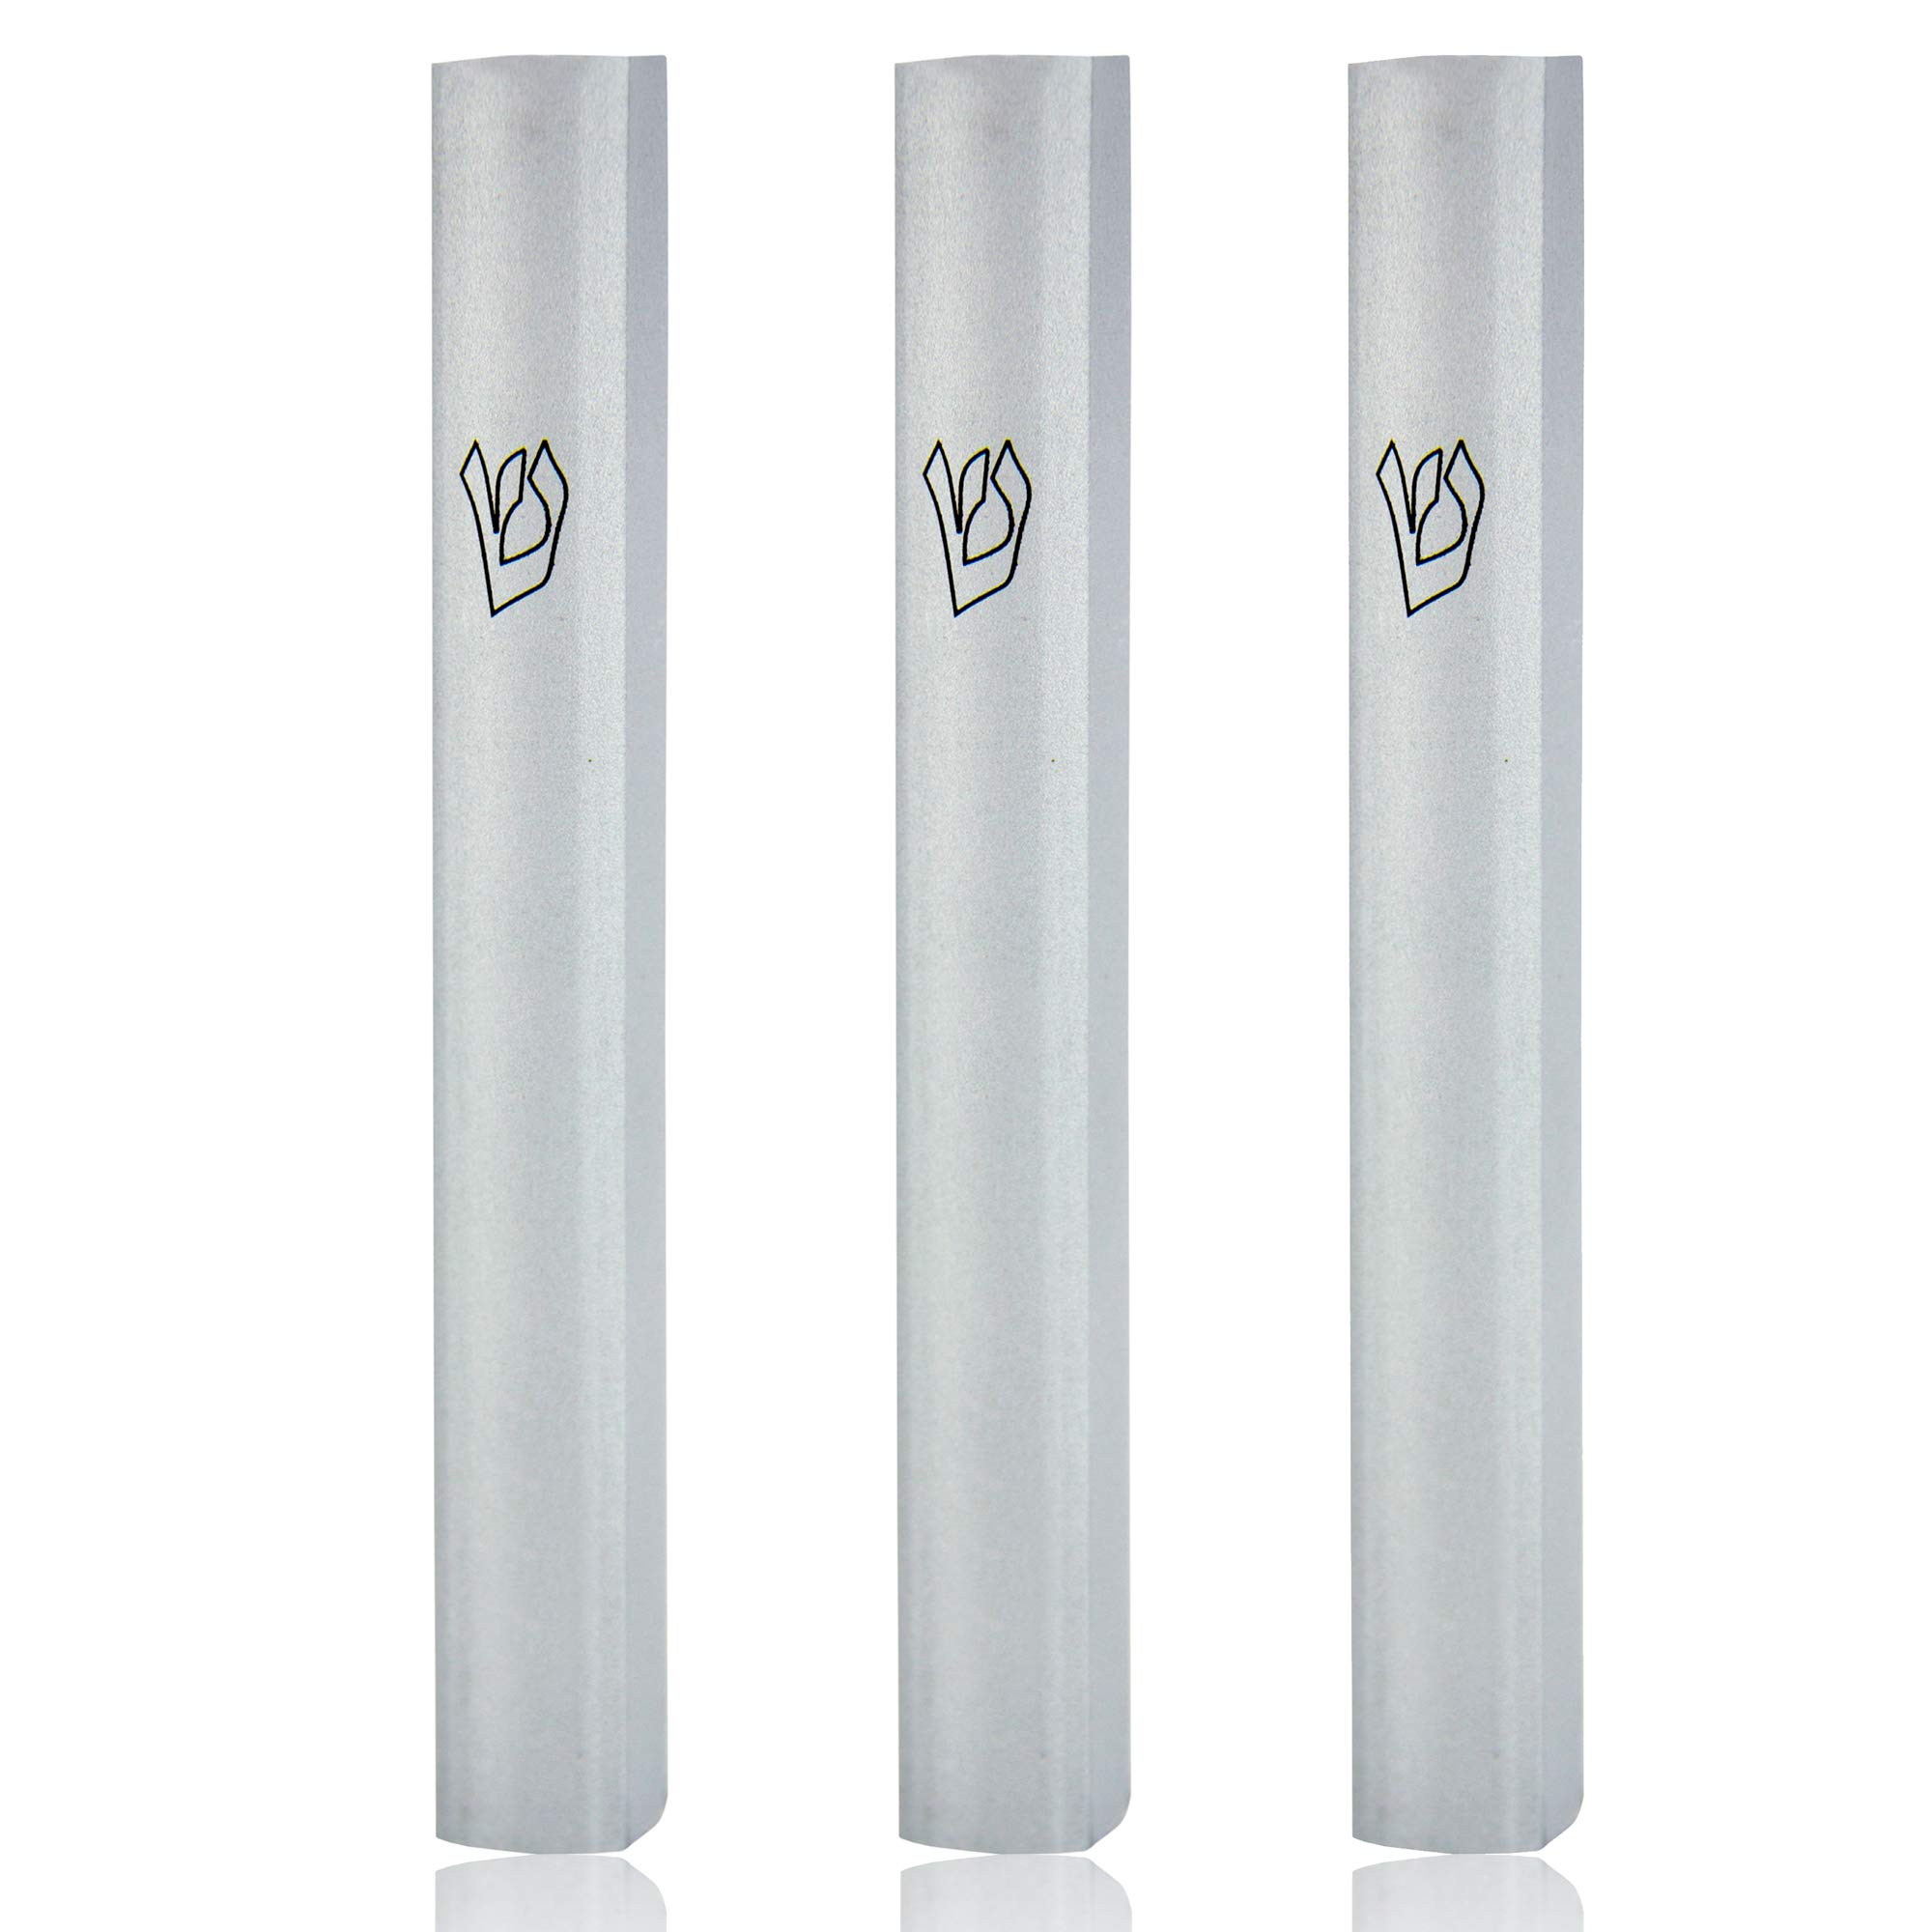 ateret yudaica Judaica-MP (3-Pack) Silver Matt Aluminum MEZUZAH CASE for 5''/12cm Mezuzah Scroll, Easy Peel and Stick, for Door Mezuzah Scroll - Weather Proof CASE Protection - Made in Israel